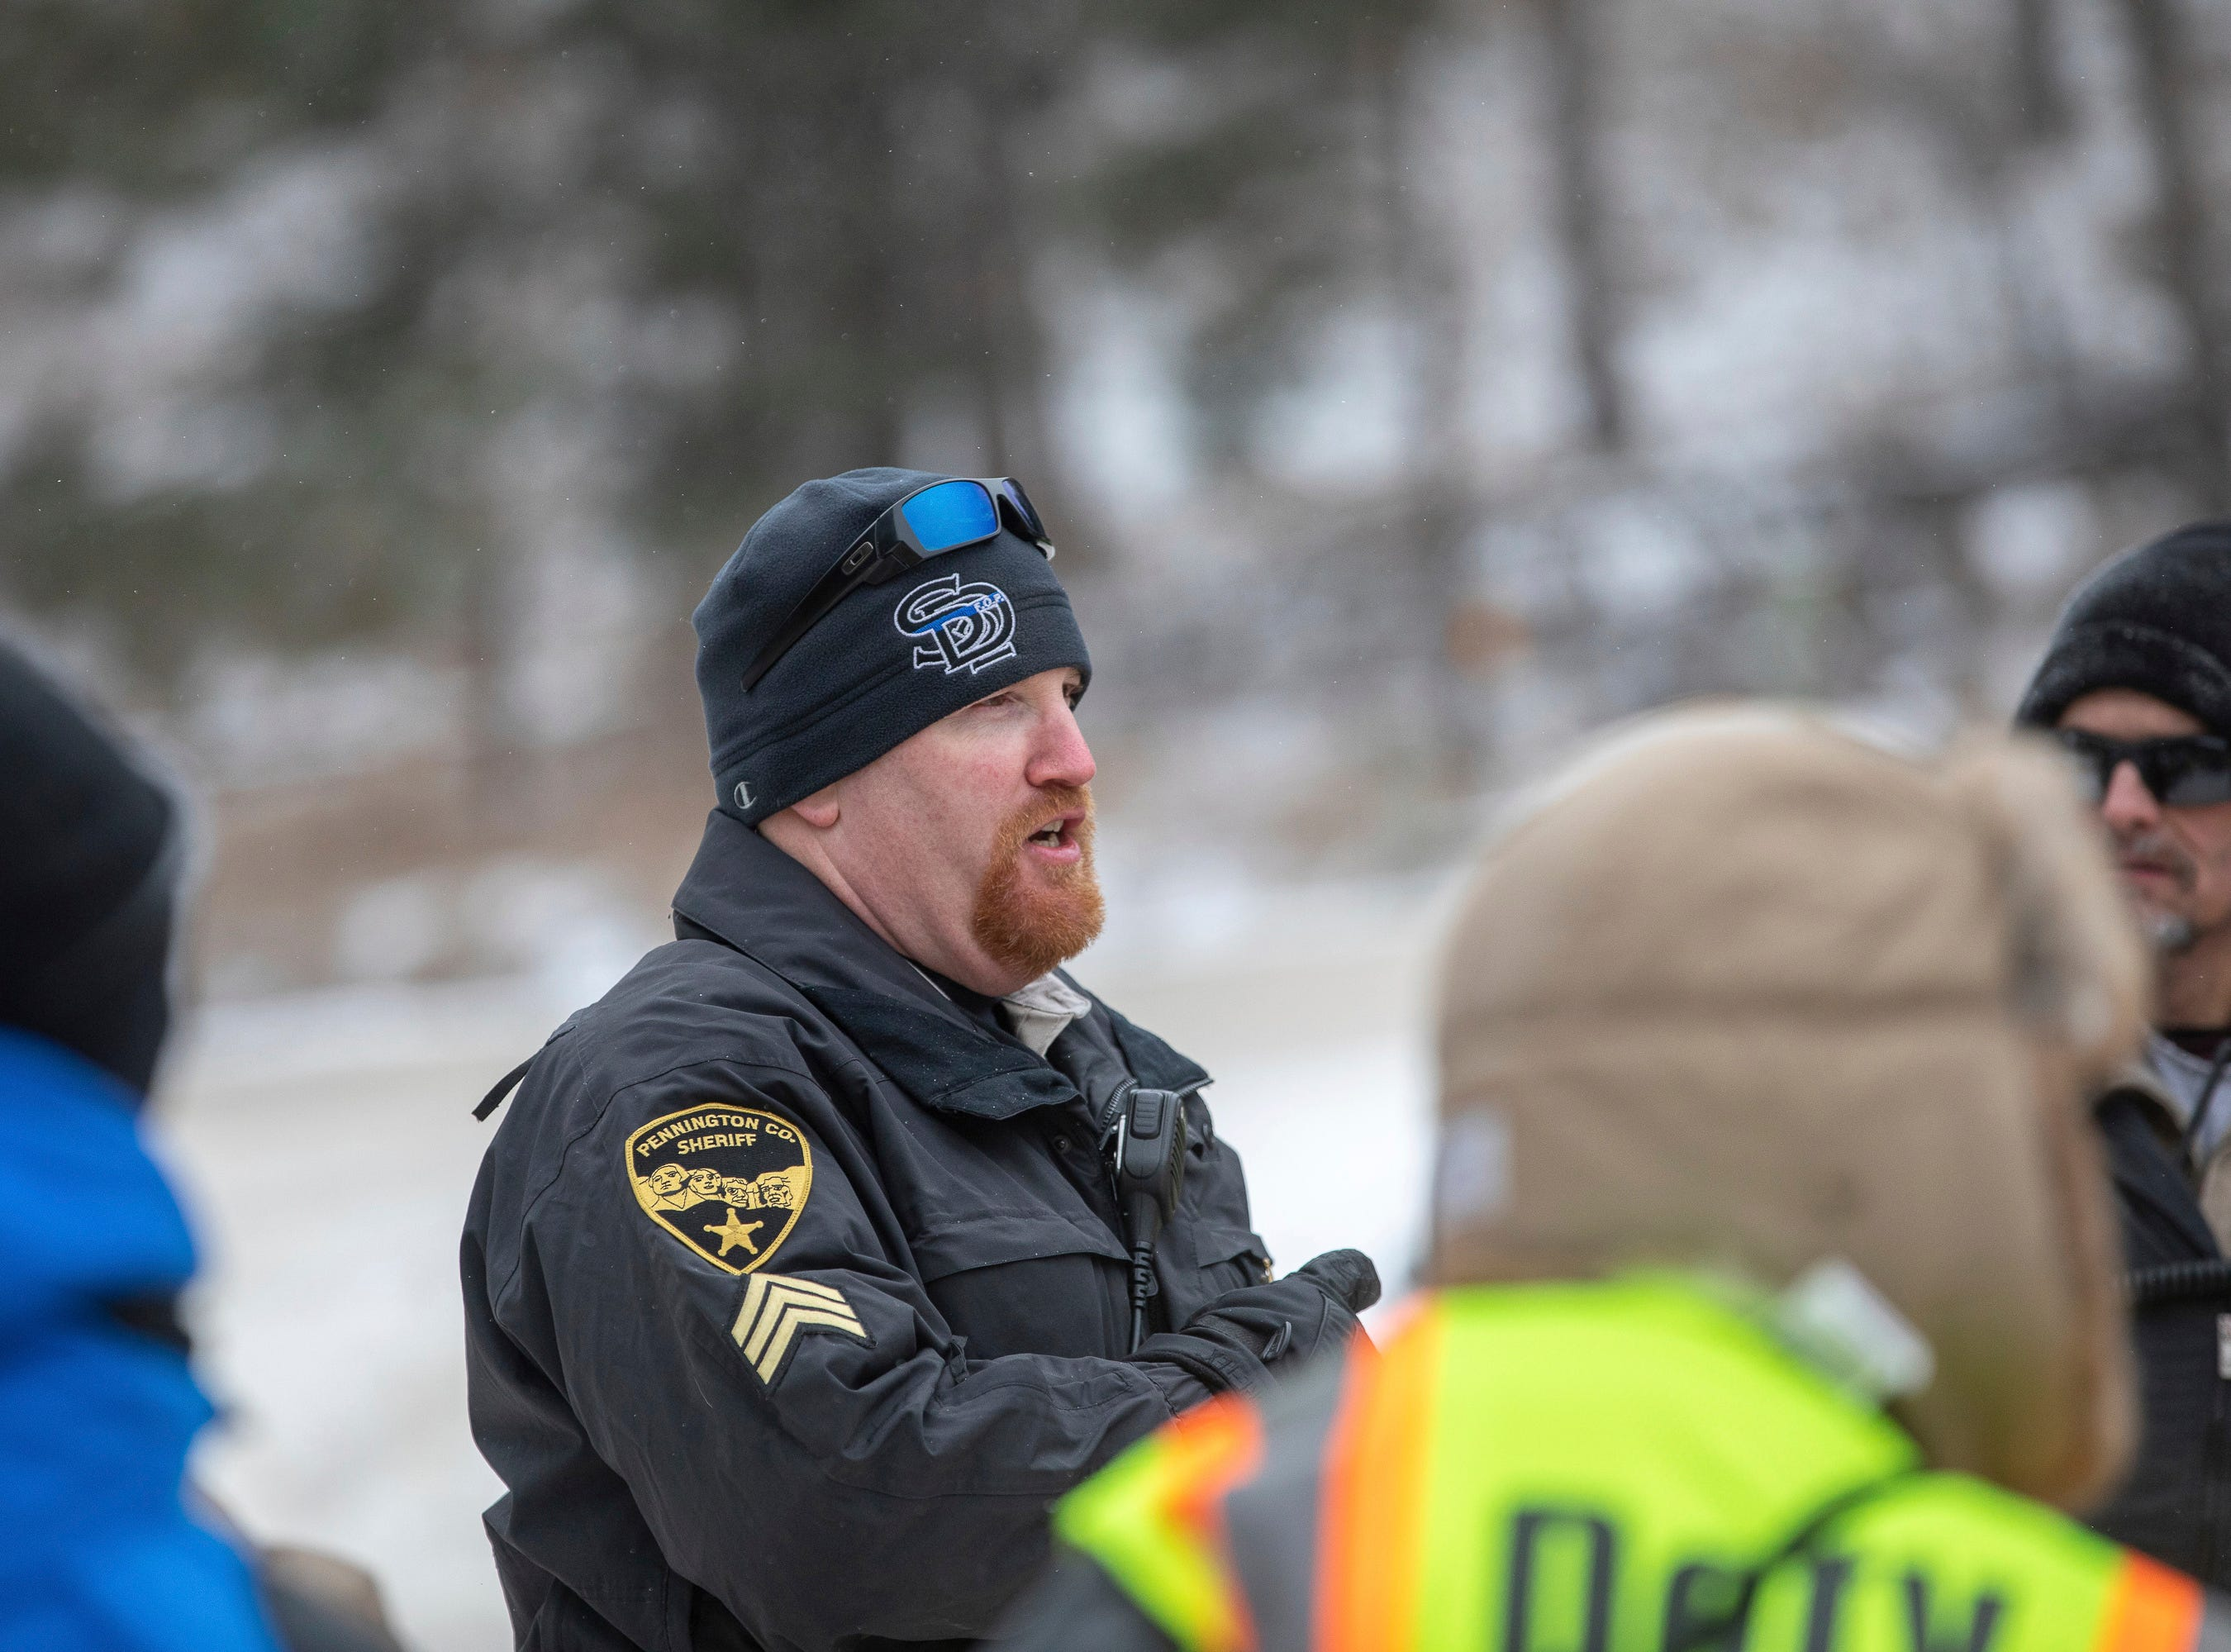 Jeromey Smith, a sergeant with the Pennington County Sheriff's Office, speaks to searchers in a parking lot at the Black Hills Children's Home near Rockerville, S.D., on Tuesday, Feb. 5, 2019, who were helping to look for Serenity Dennard, a 9-year-old girl who was last seen Sunday morning leaving the Children's Home. (Ryan Hermens/Rapid City Journal via AP)